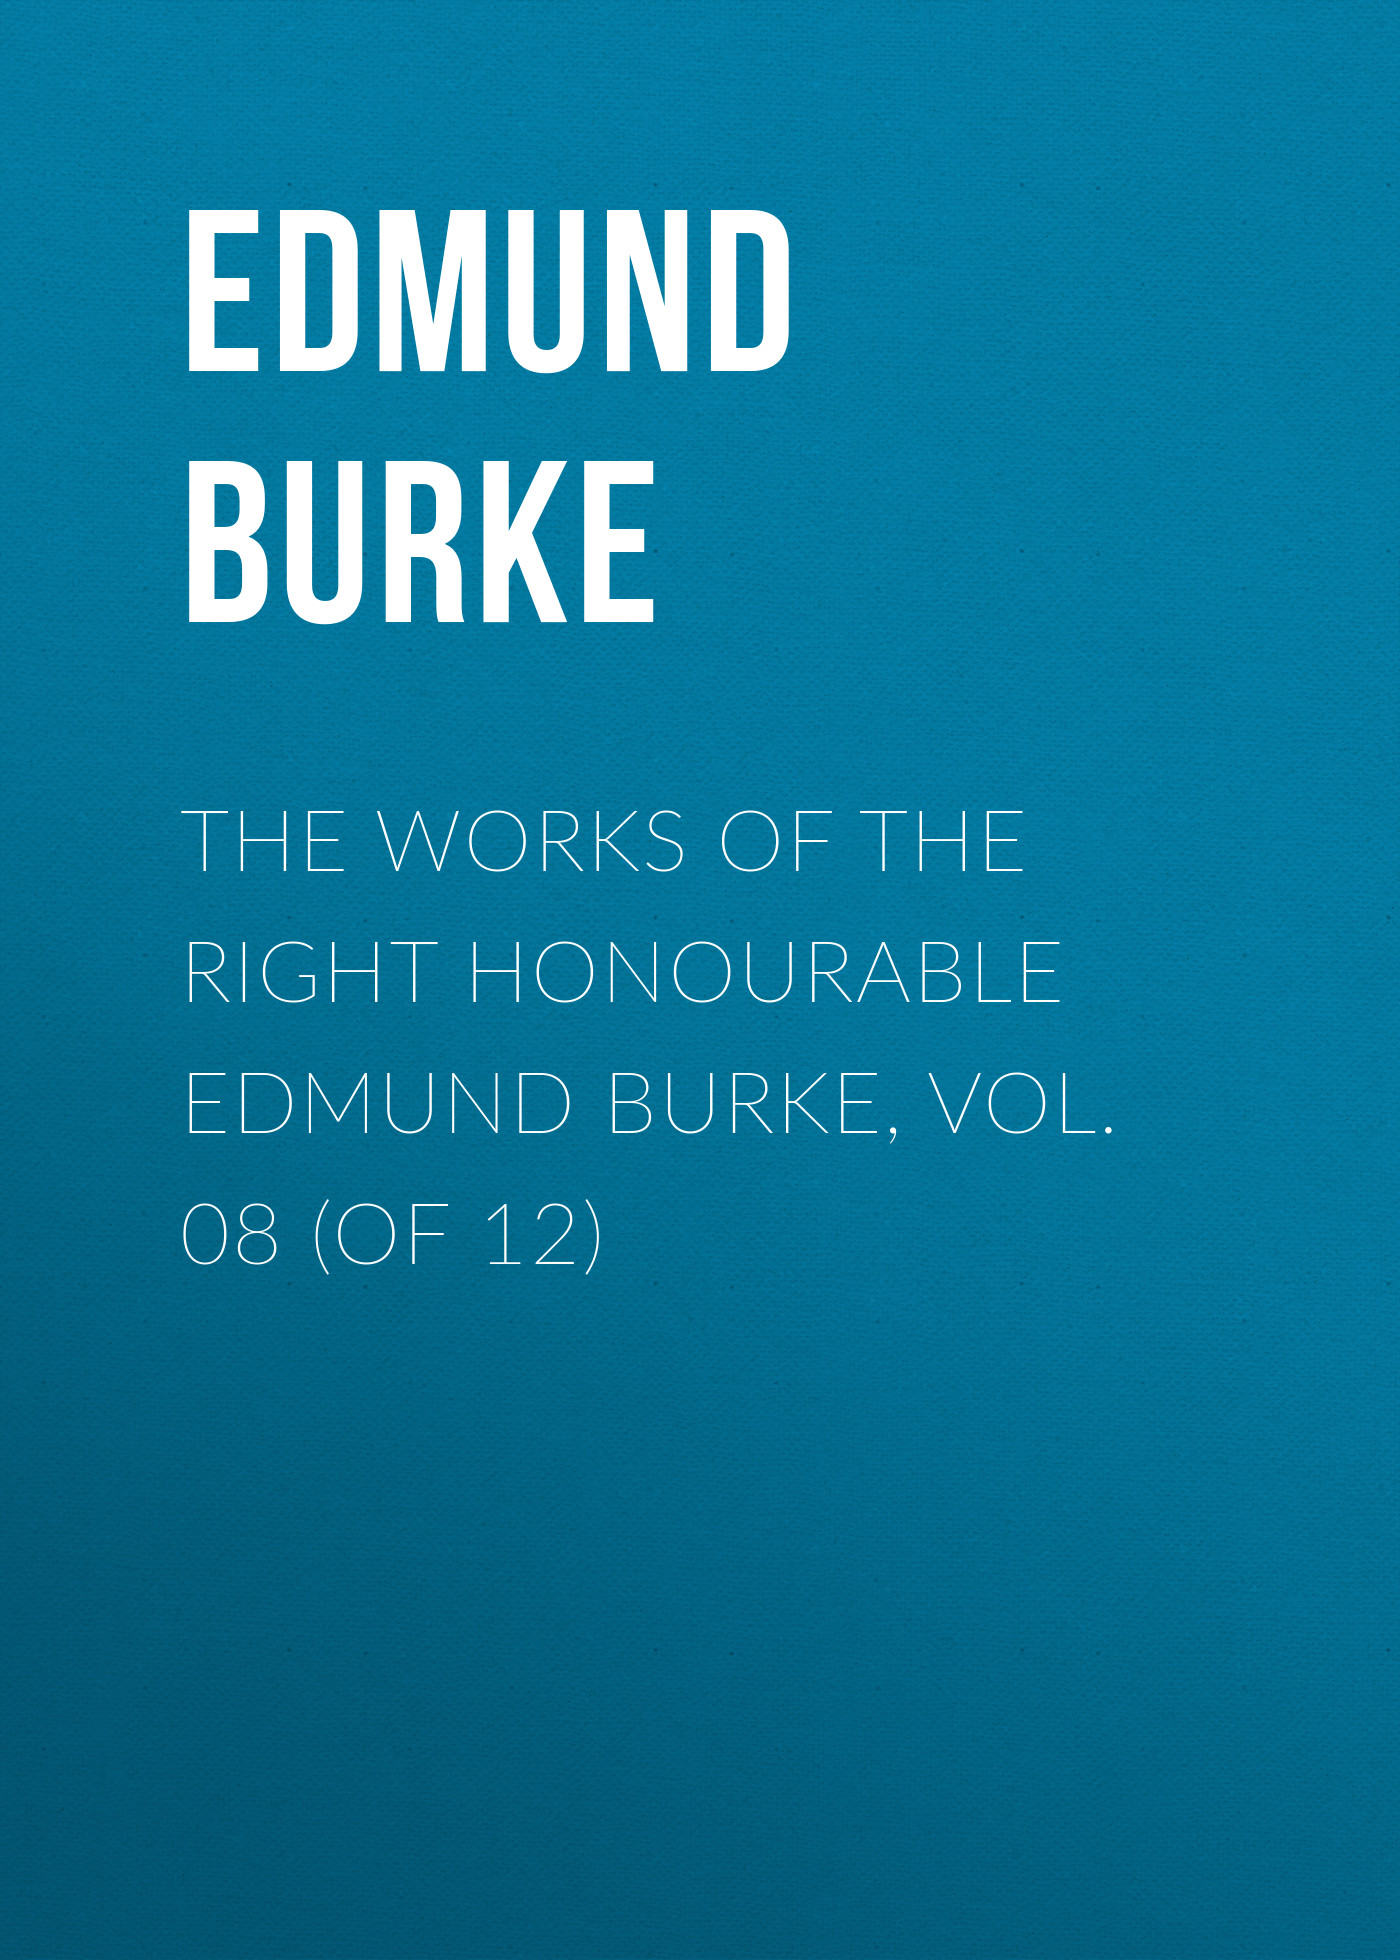 Edmund Burke The Works of the Right Honourable Edmund Burke, Vol. 08 (of 12) burke edmund the speeches of the right honourable edmund burke on the impeachment of warren hastings